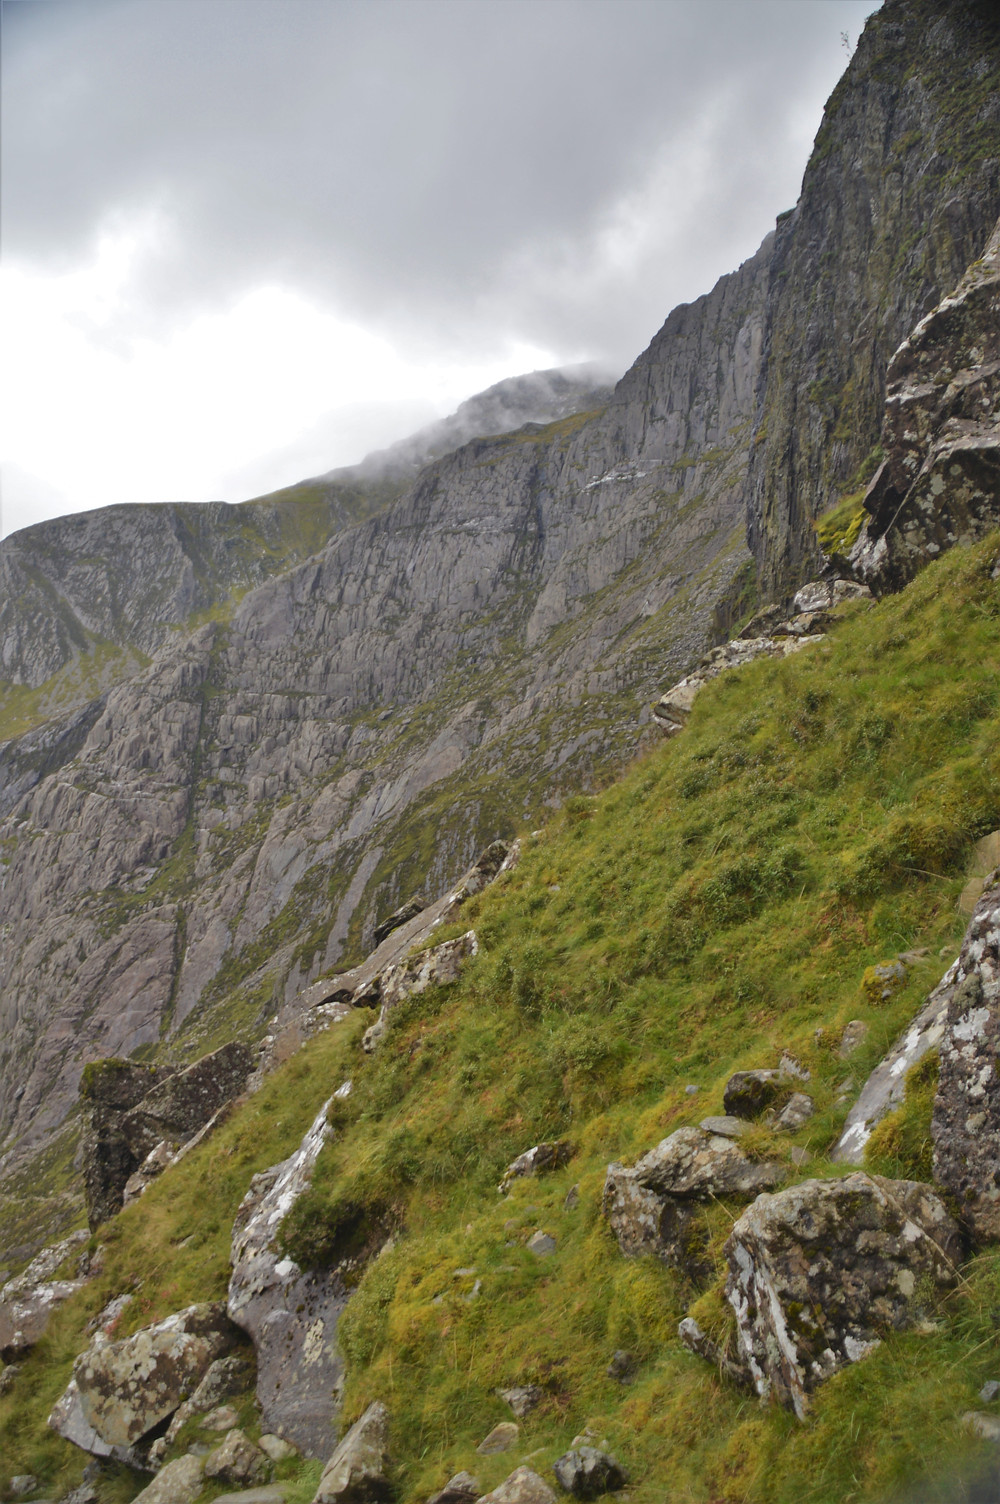 The trail leading to Devil's Kitchen became steeper with views of Cliff of the Goat (Clogwyn y Geifr).